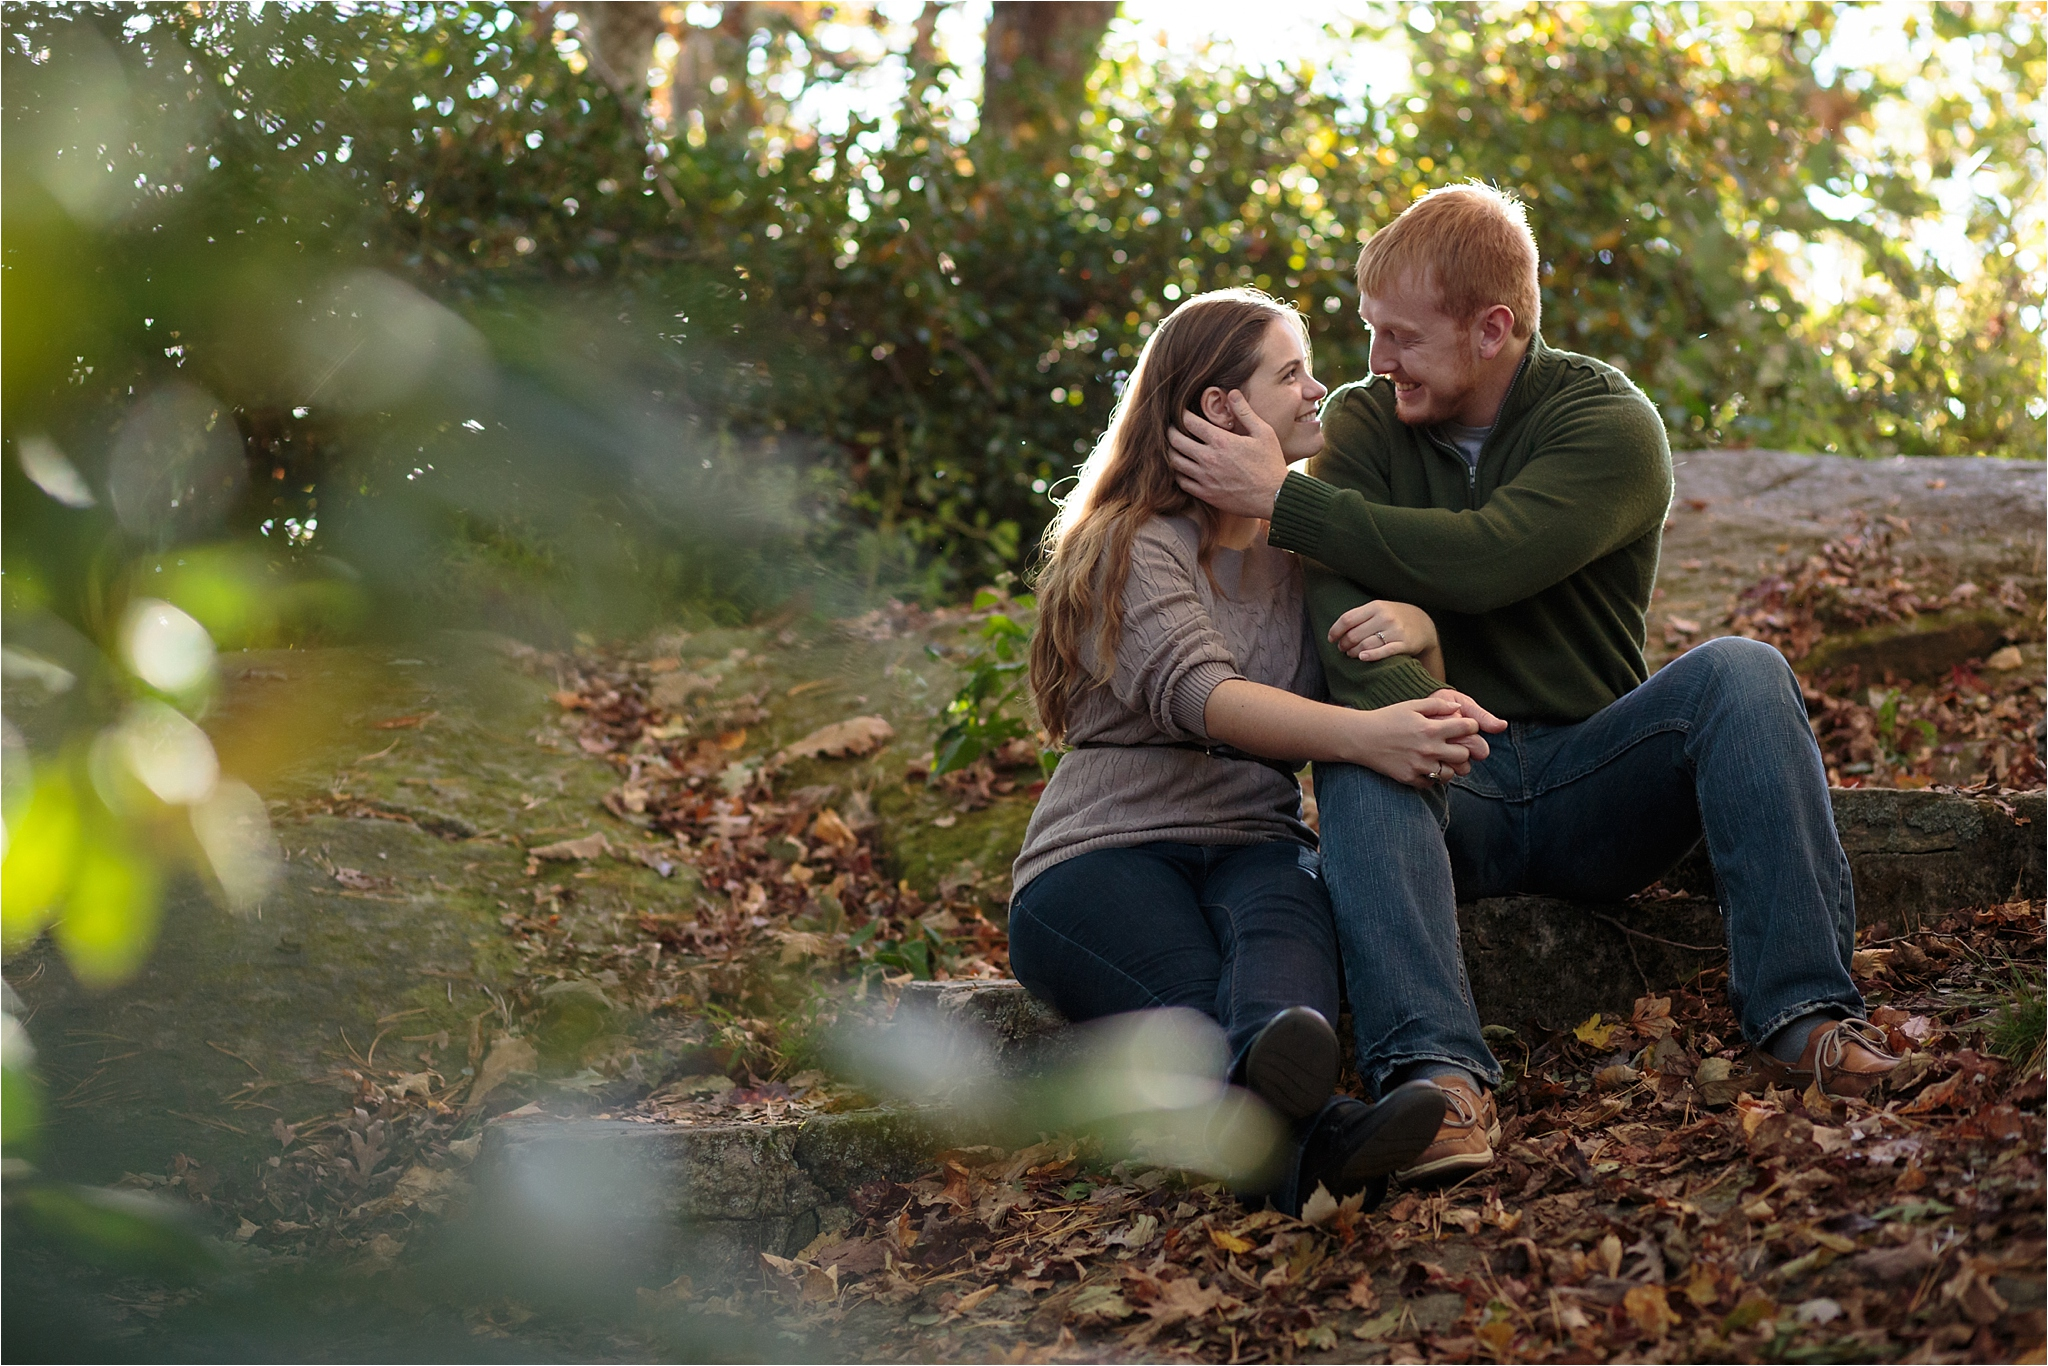 caesars-head-engagement-shoot-5_blog.jpg